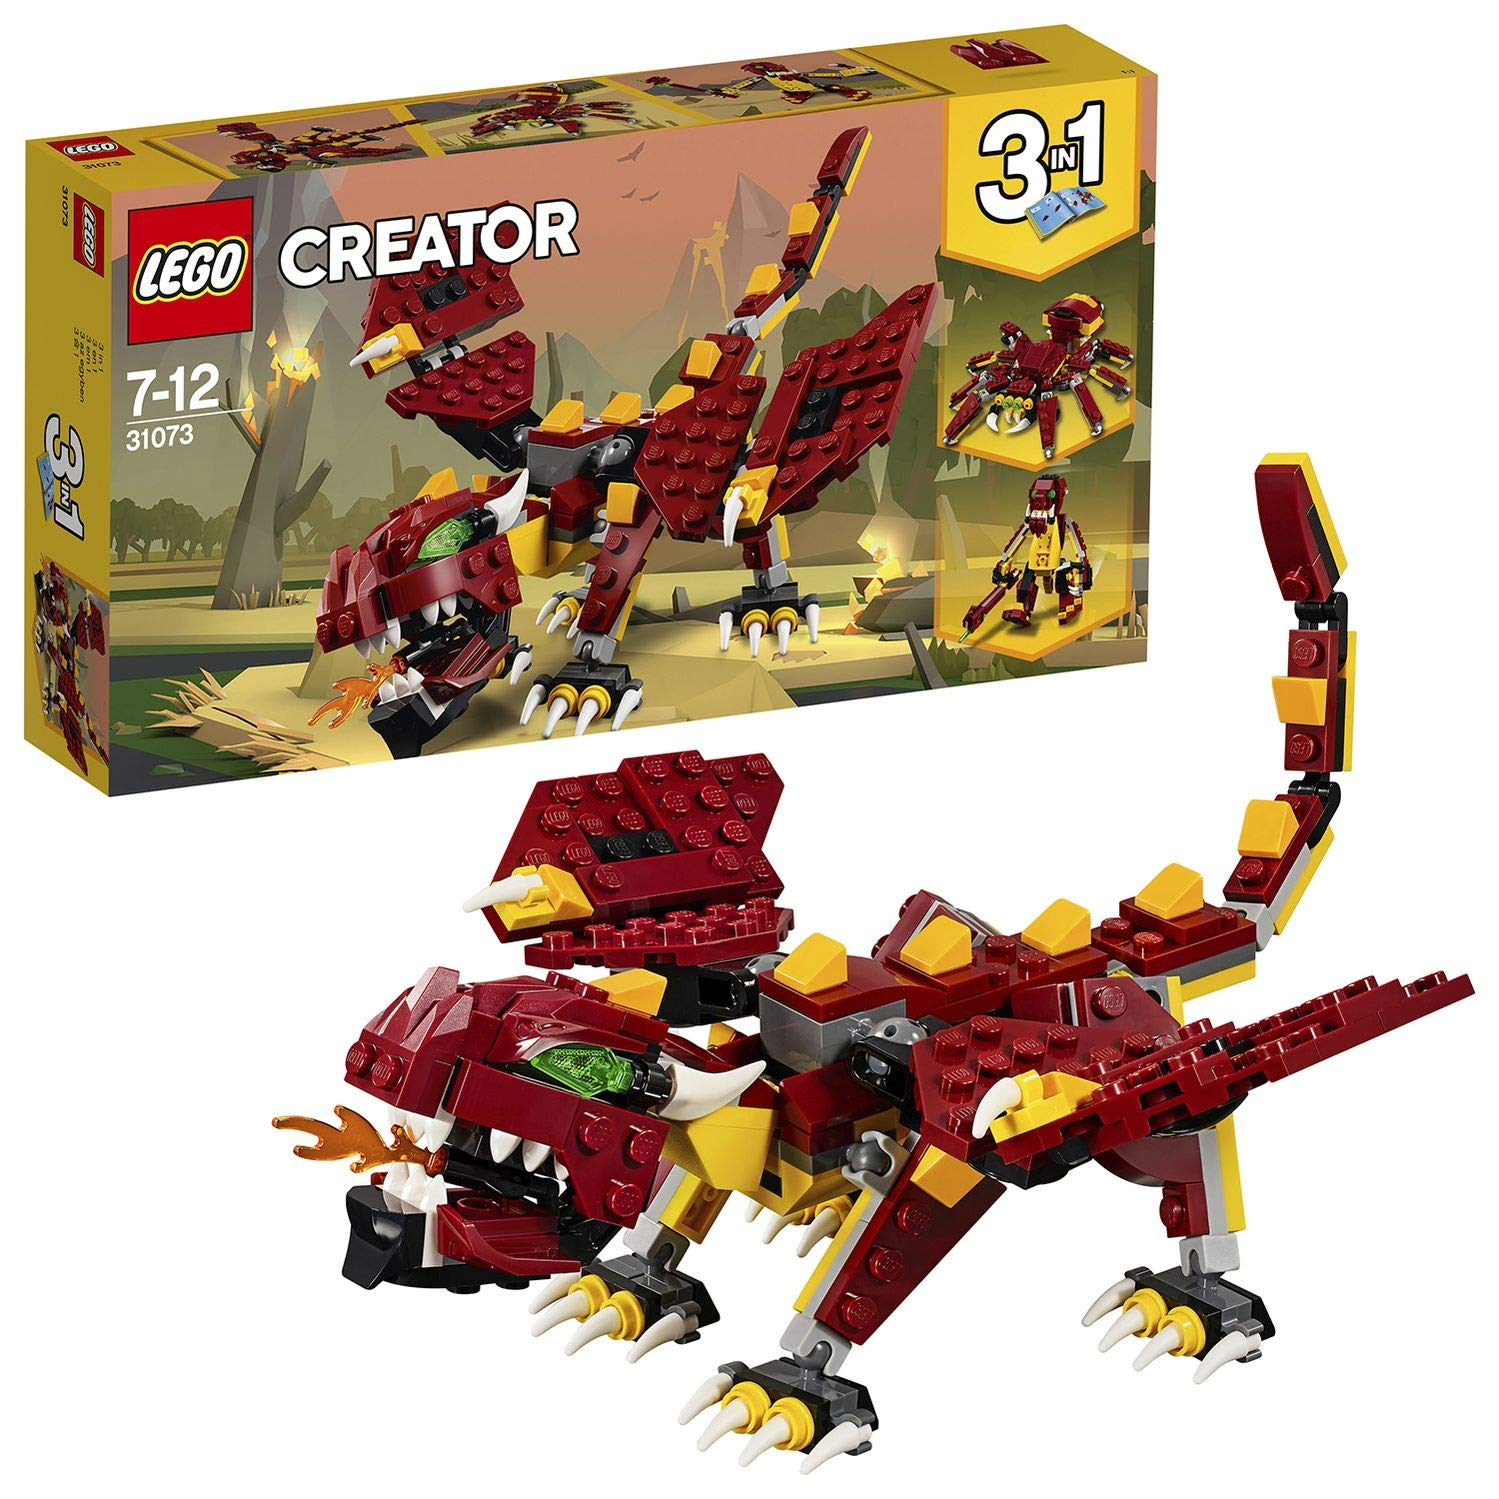 LEGO Creator 3in1 Mythical Creatures Dragon, Giant Spider and Troll Action Figures Model Building Set